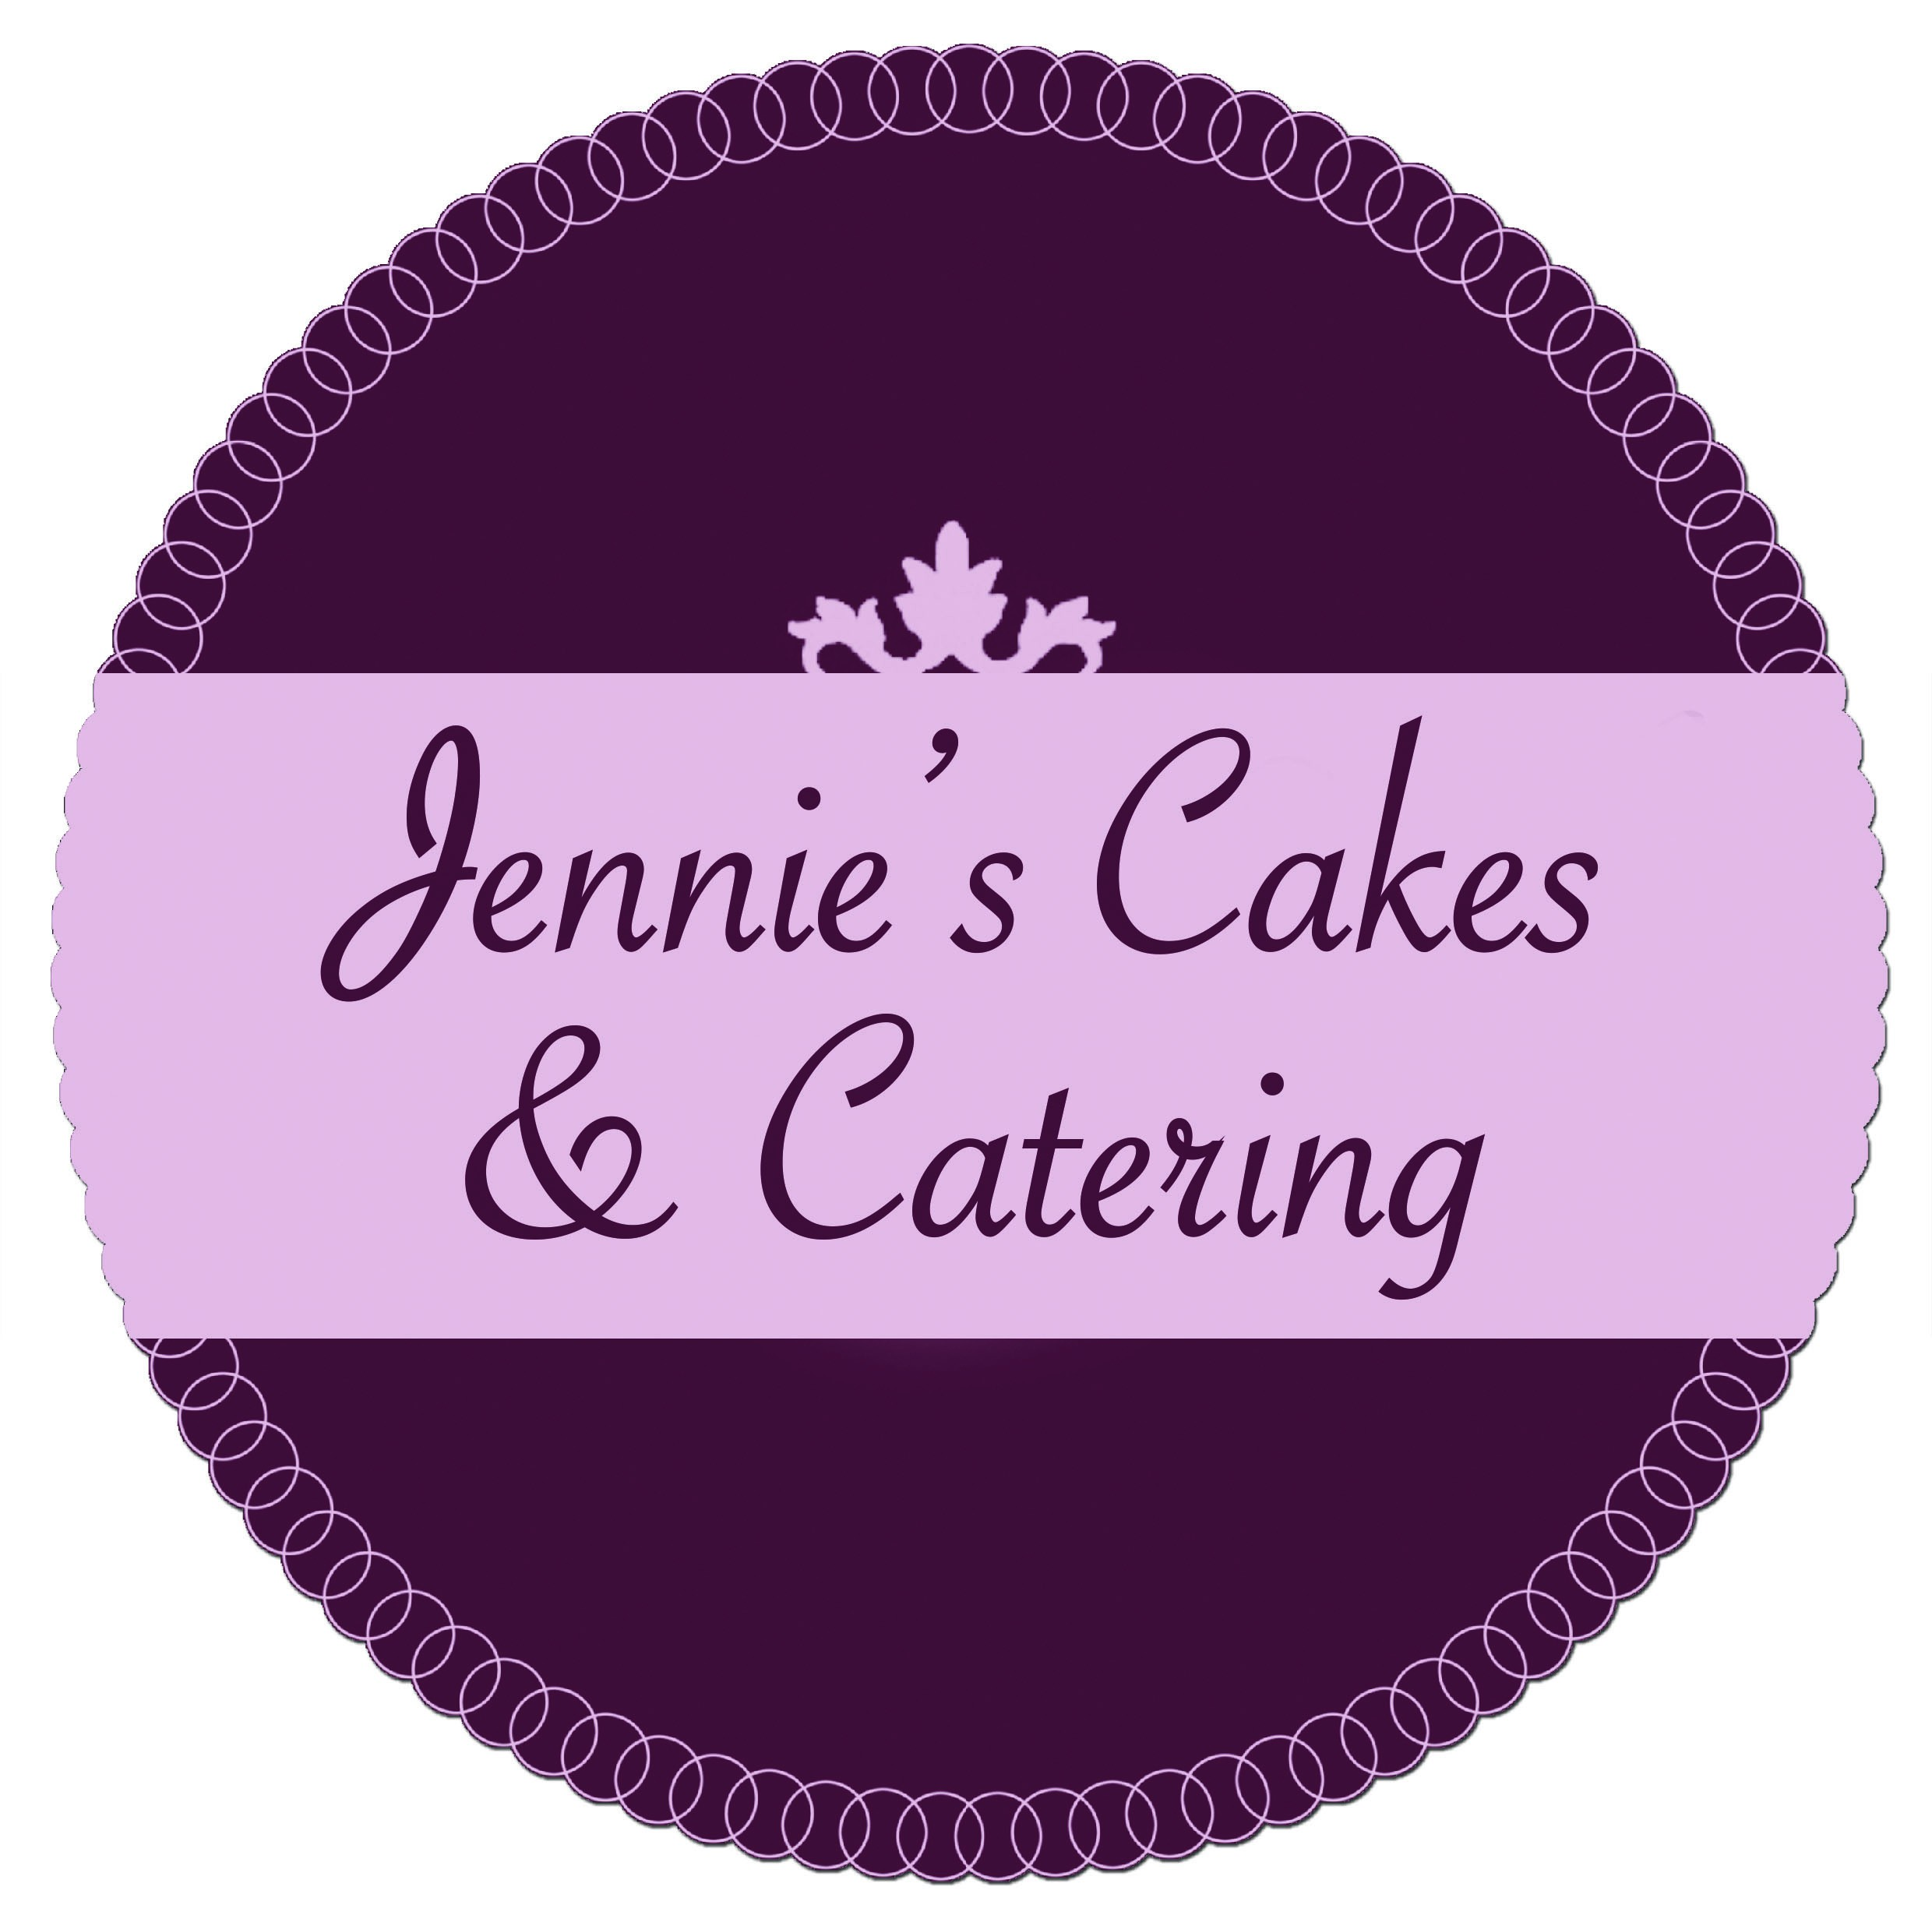 Jennies Cakes & Catering